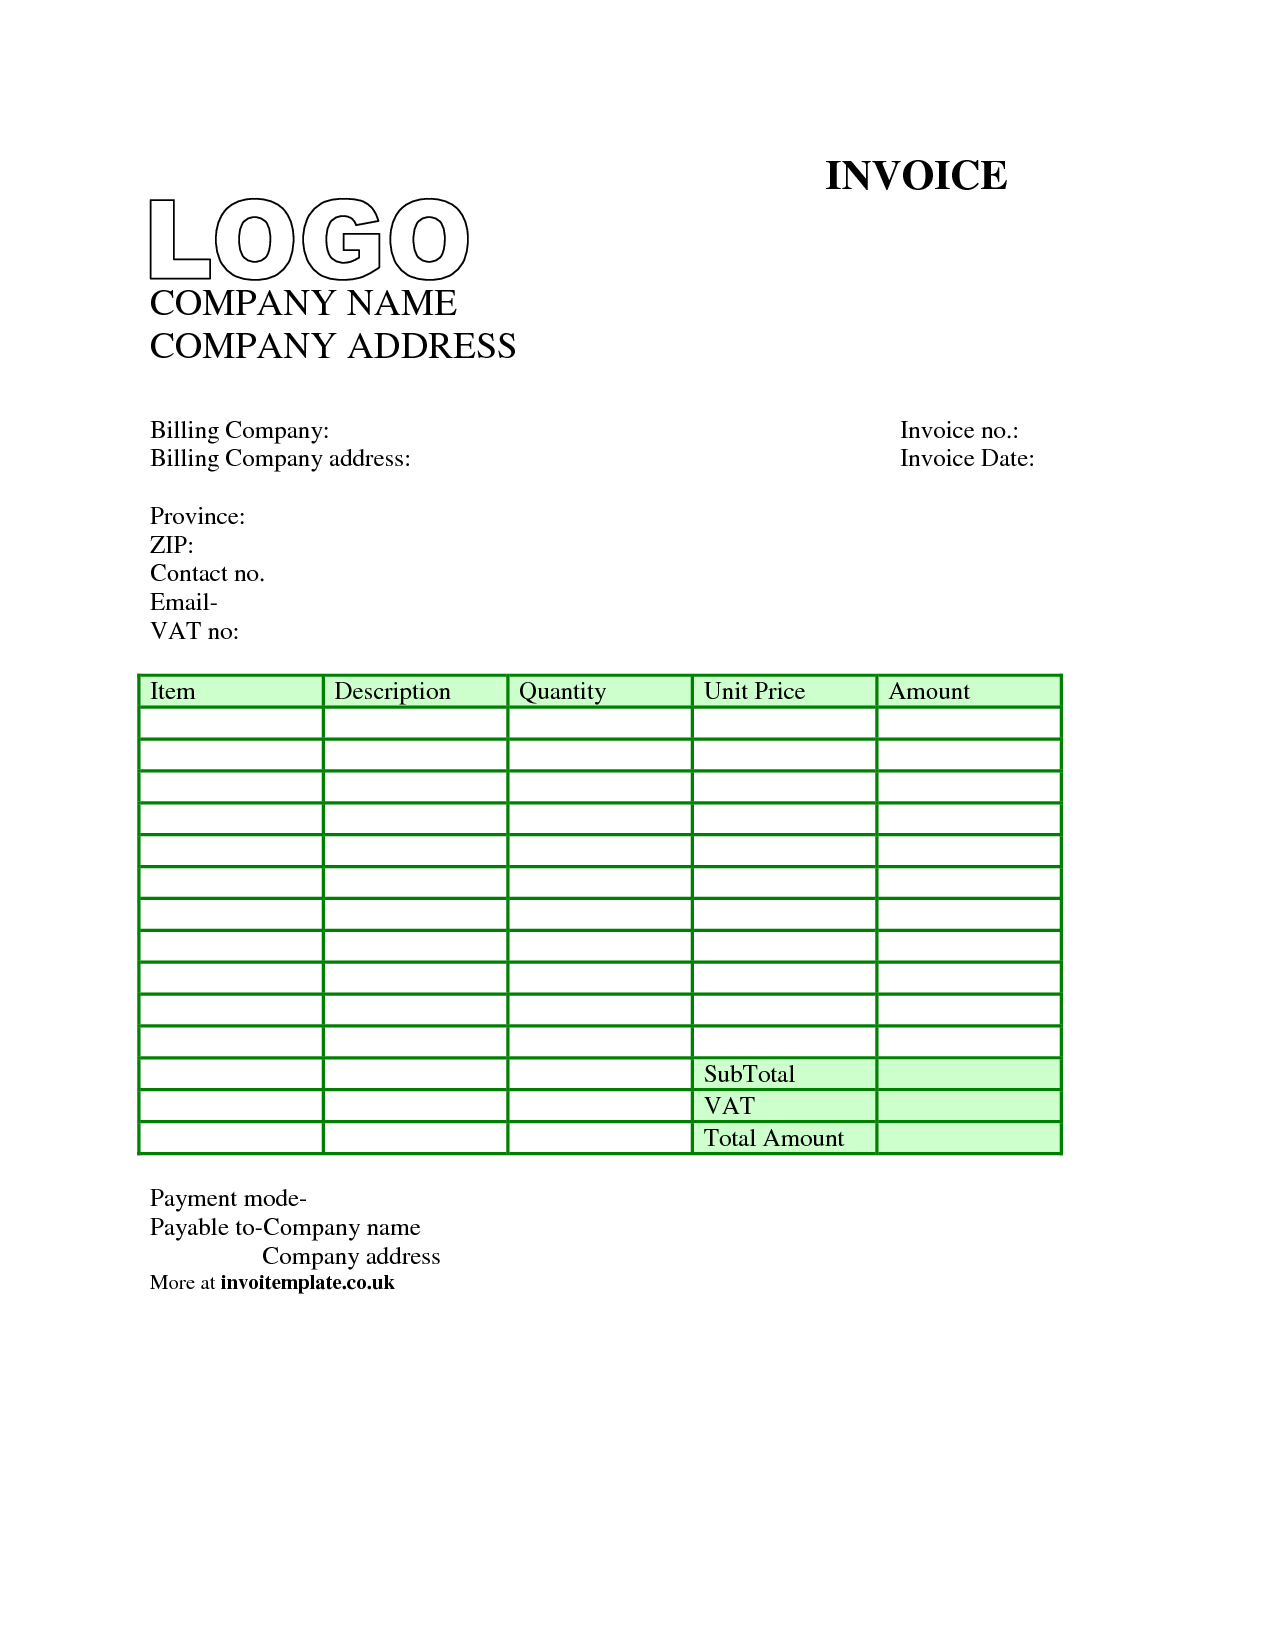 free invoice template uk version – notators, Invoice examples